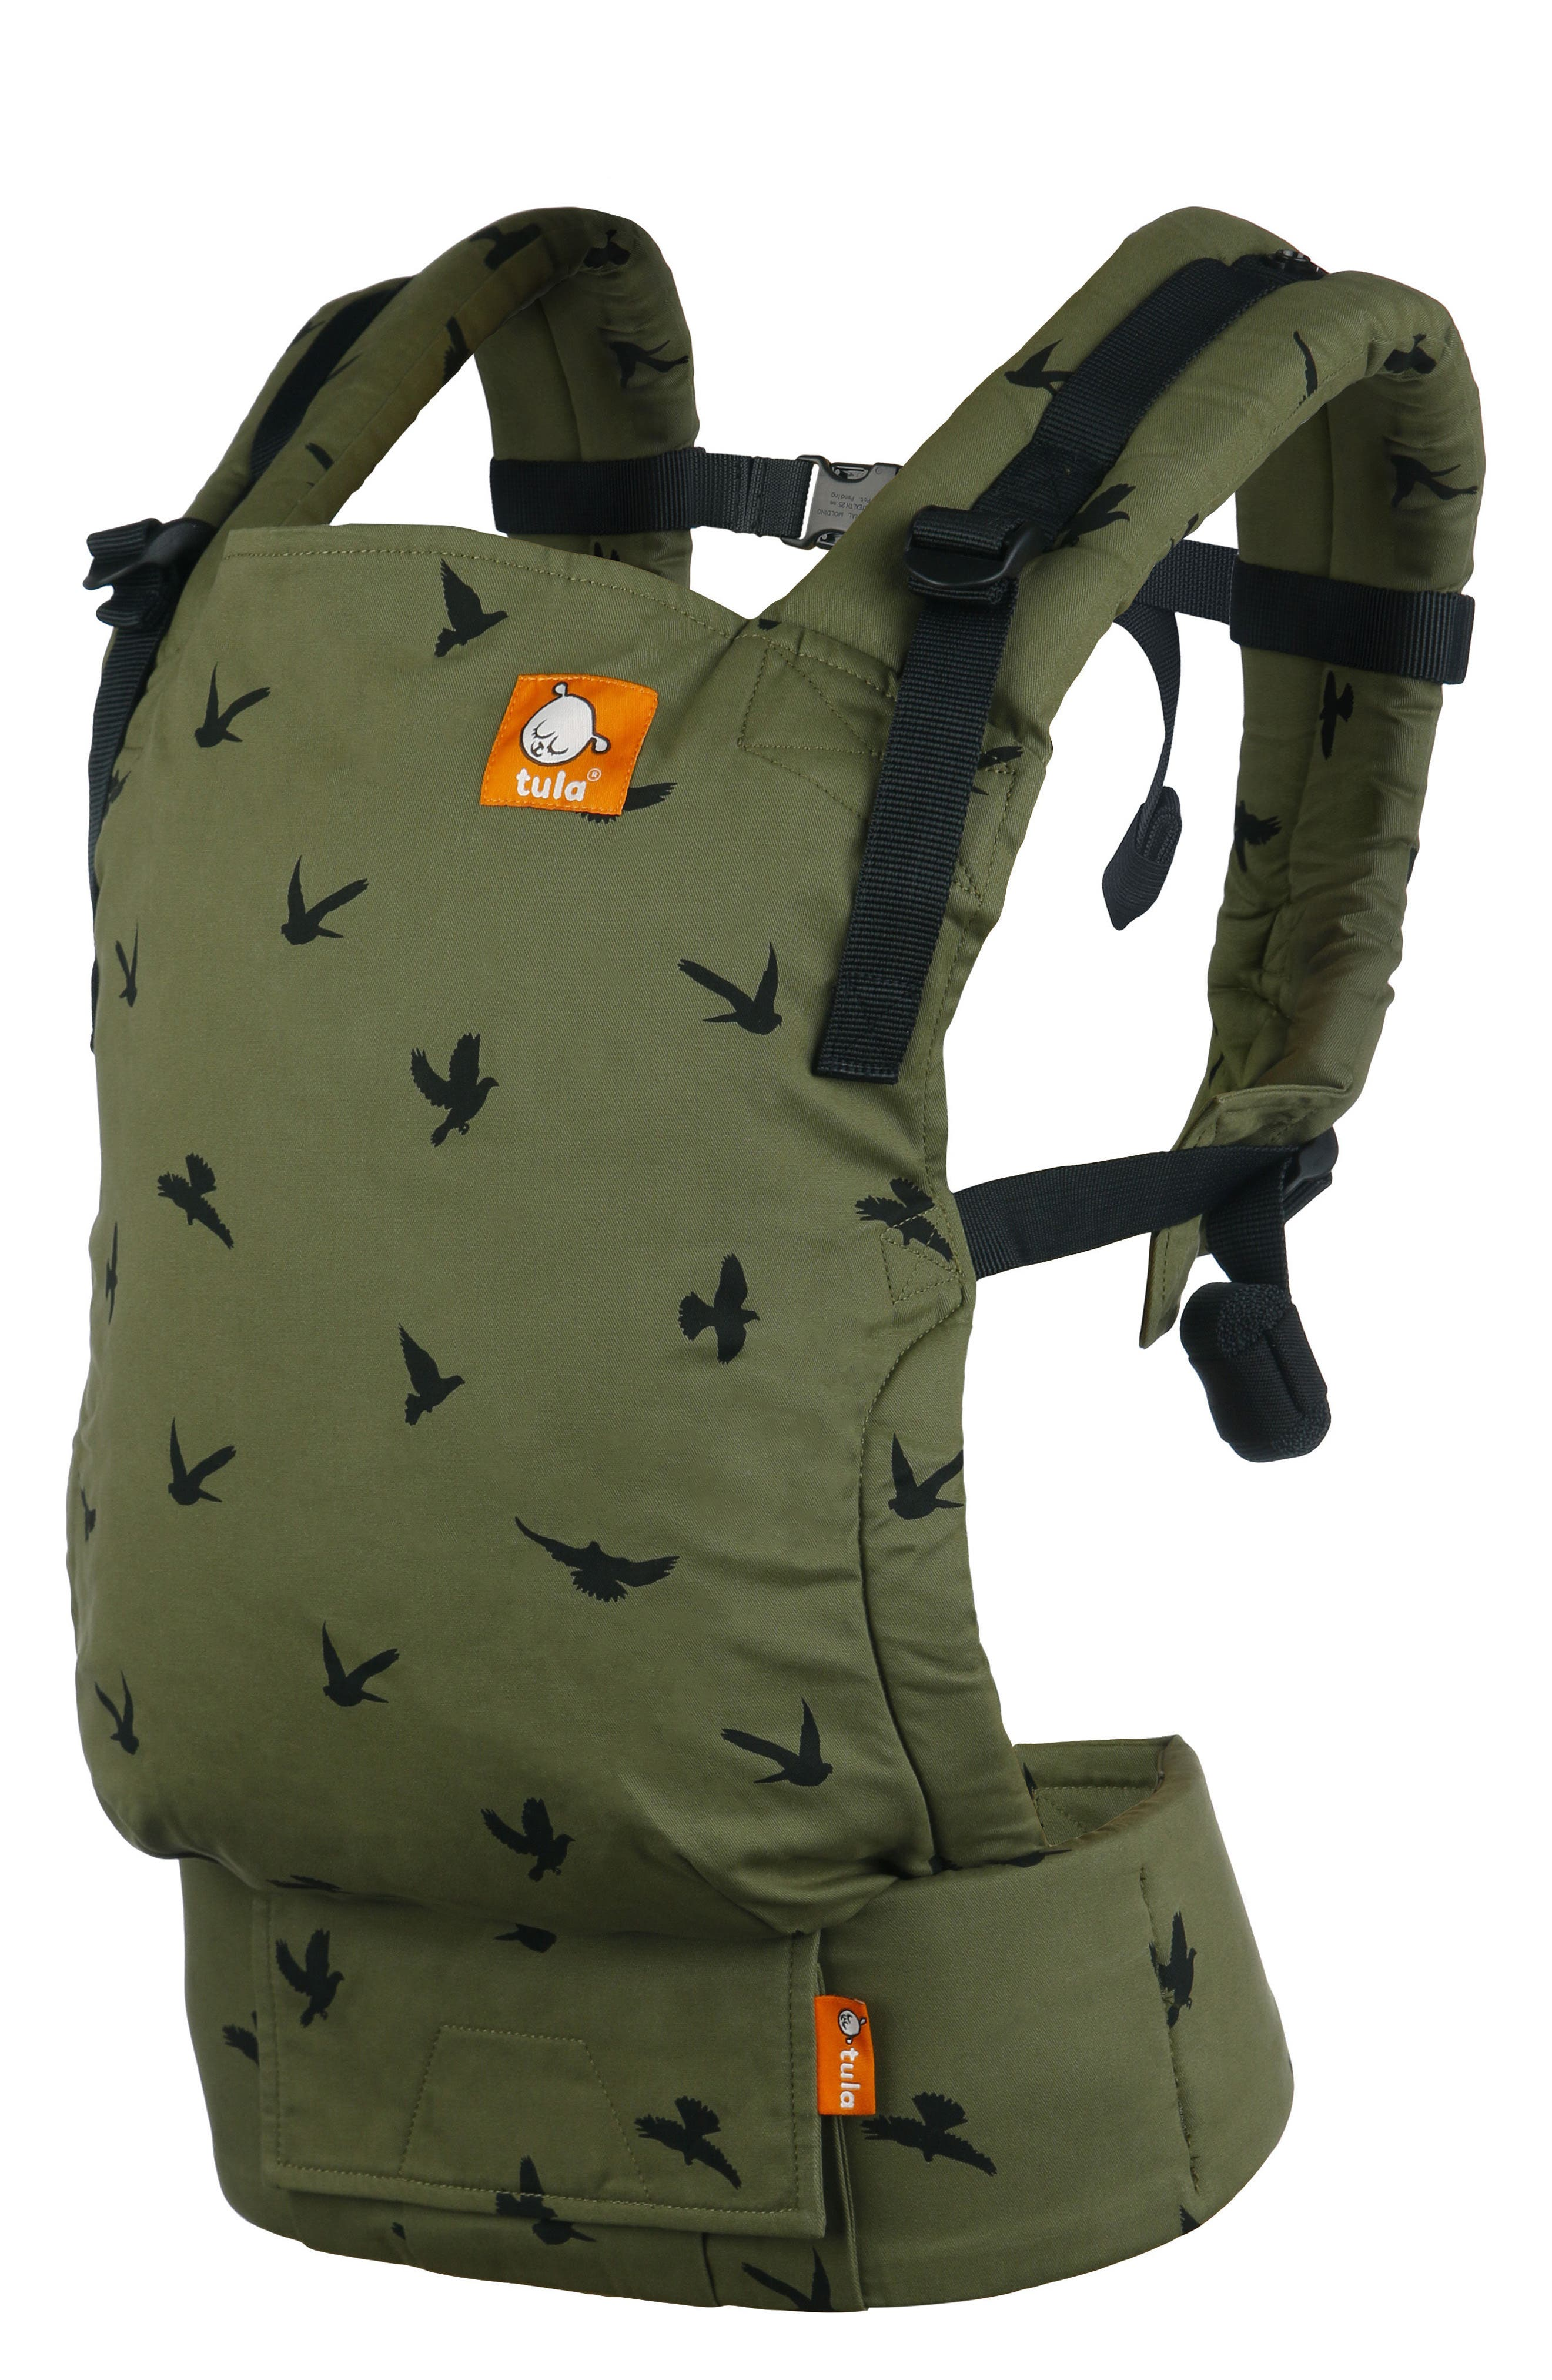 Infant Baby Tula Soar FreeToGrow Baby Carrier